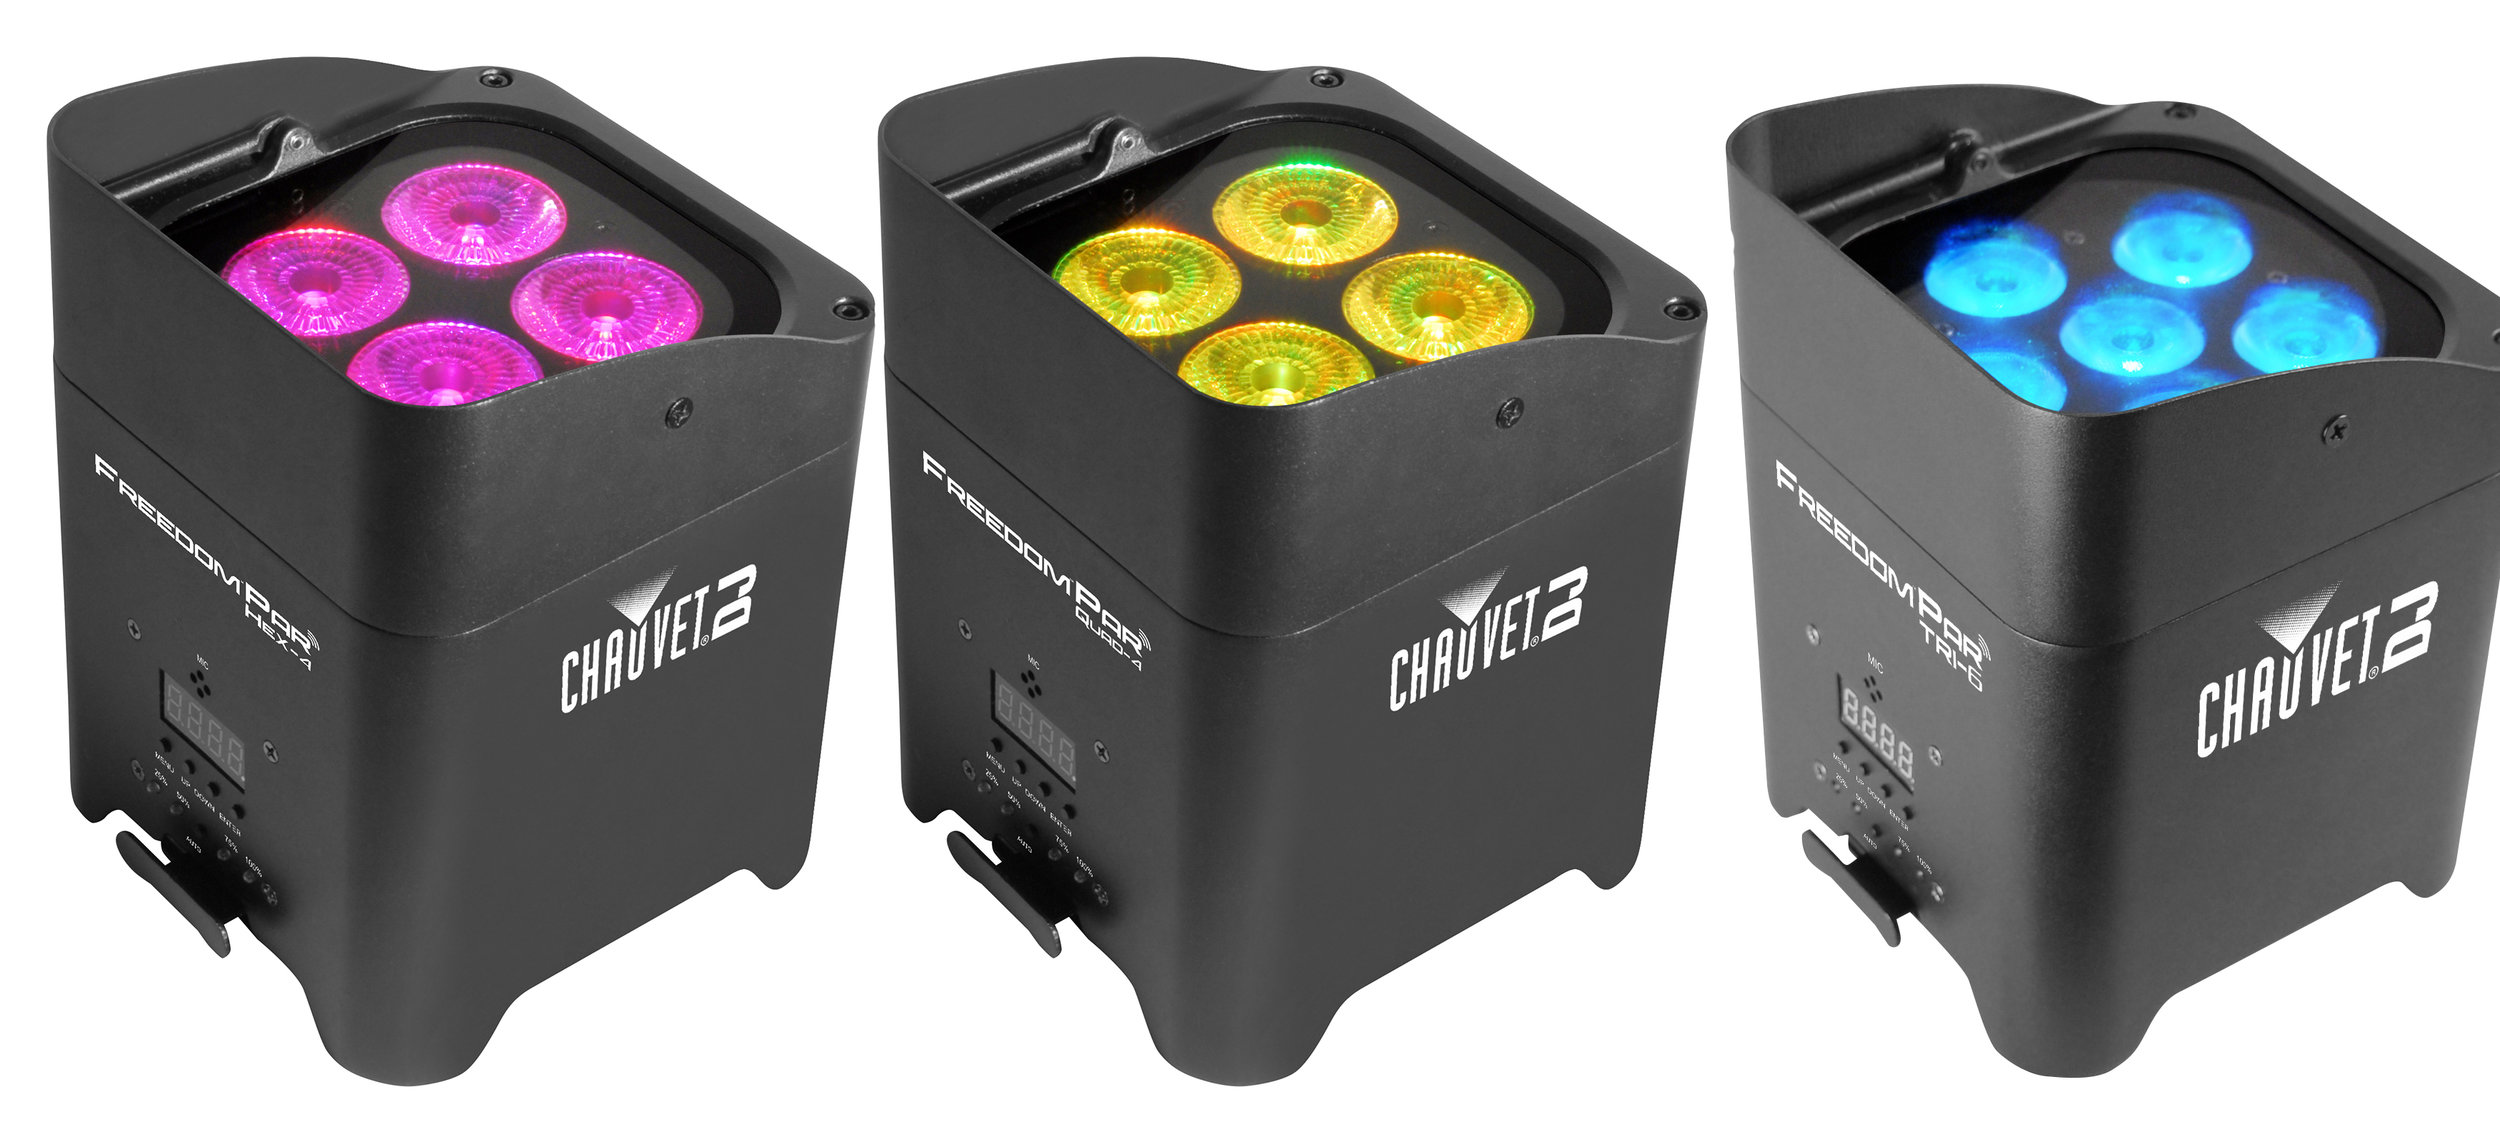 CHAUVET DJ UPLIGHTS - Wireless, battery-powered DJ lights that can be used to set a proper ambiance and tone for any party or event. These lights are equipped with over 15 different unique colors that can put arranged in any creative ways.